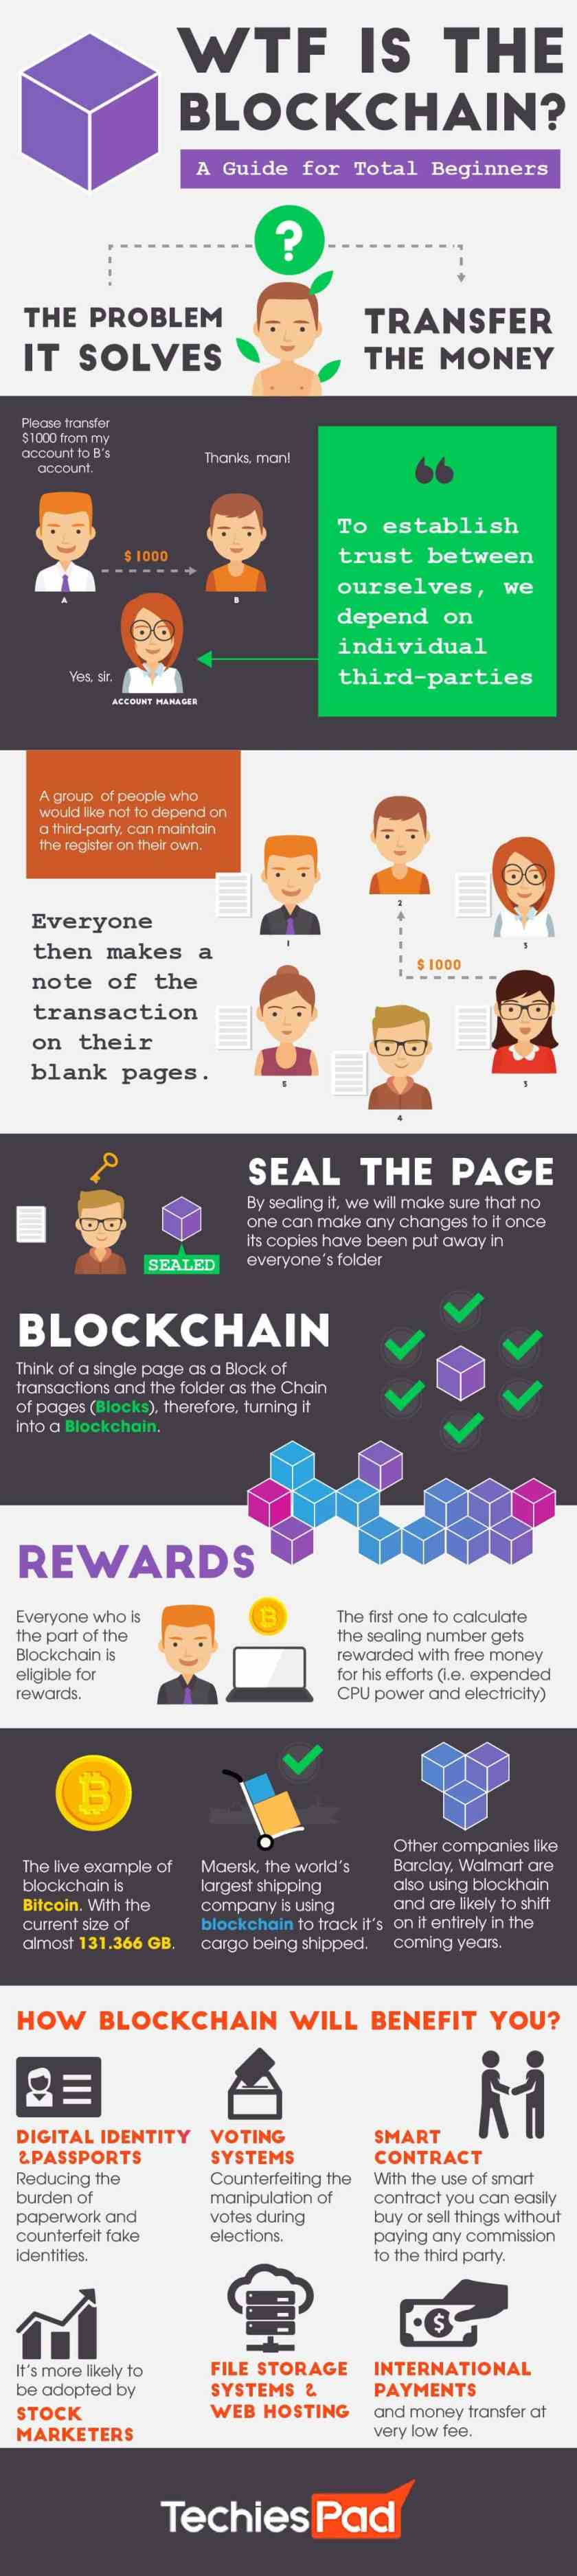 An Ultimate Beginner's Guide to BlockChain [Infographic]